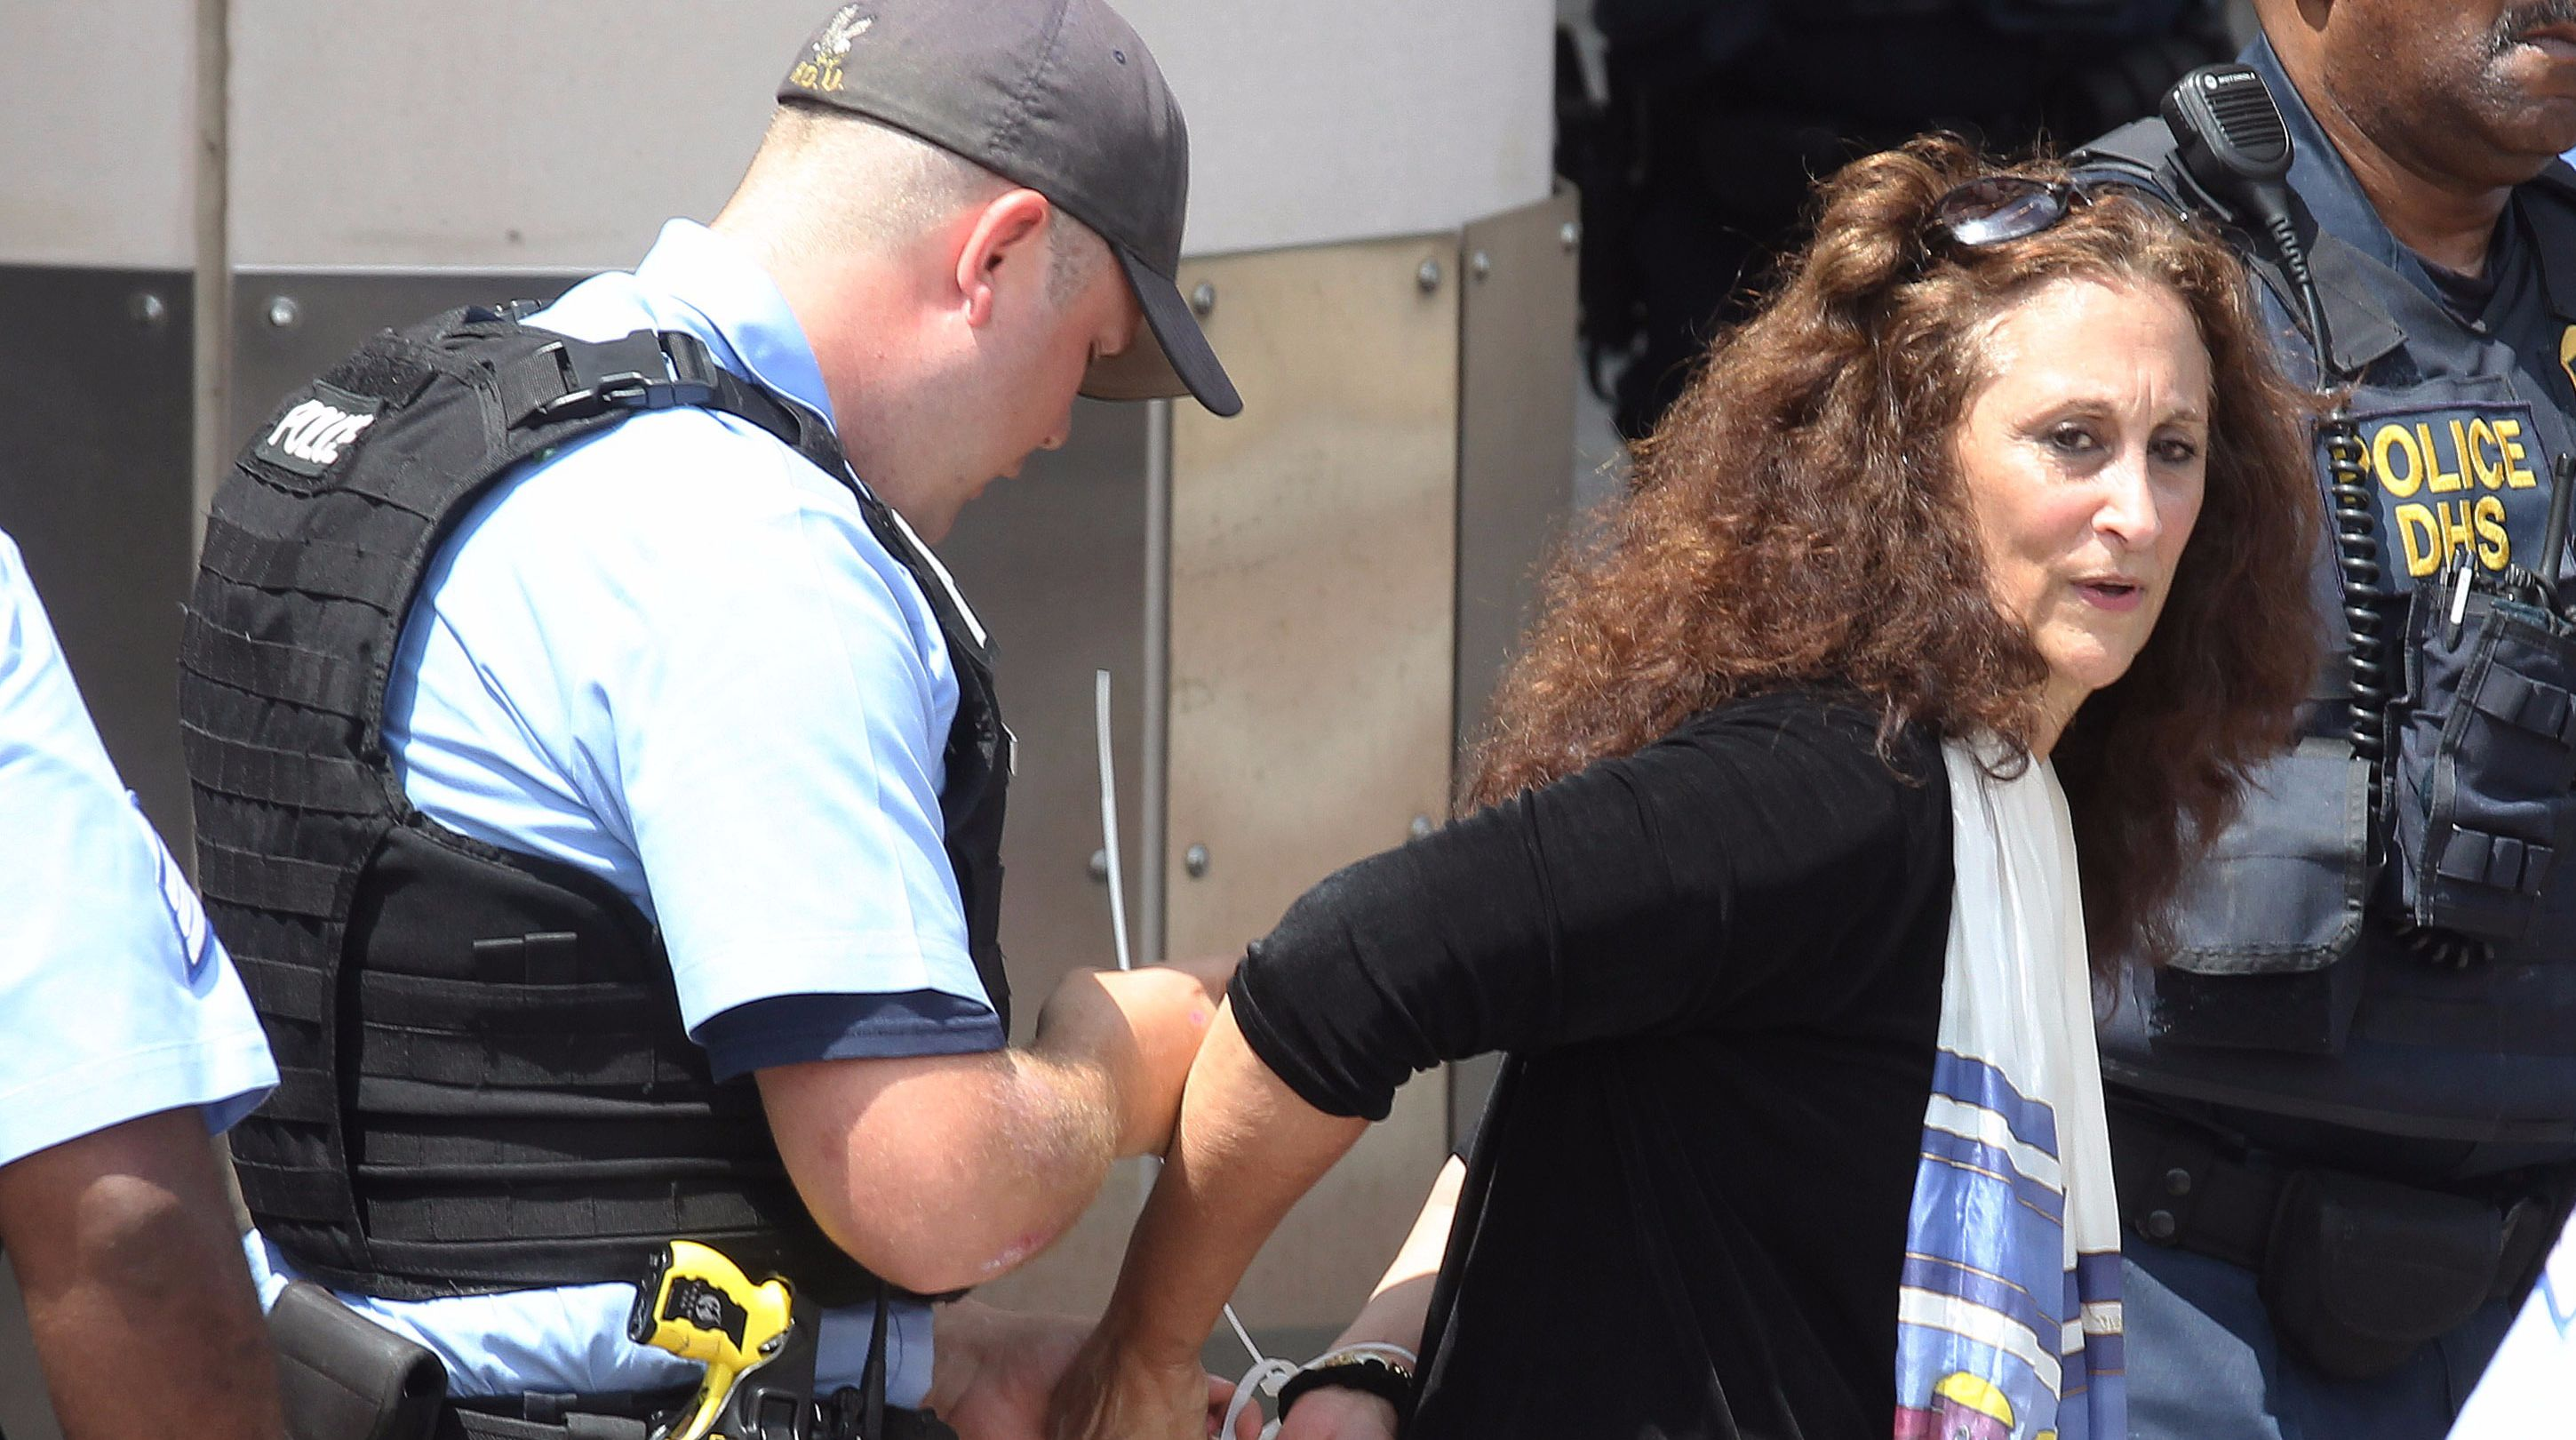 Rabbi Susan Talve is arrested in St. Louis as part of a day of disobedience held on the one-year anniversary of Michael Brown Jr.'s shooting death.